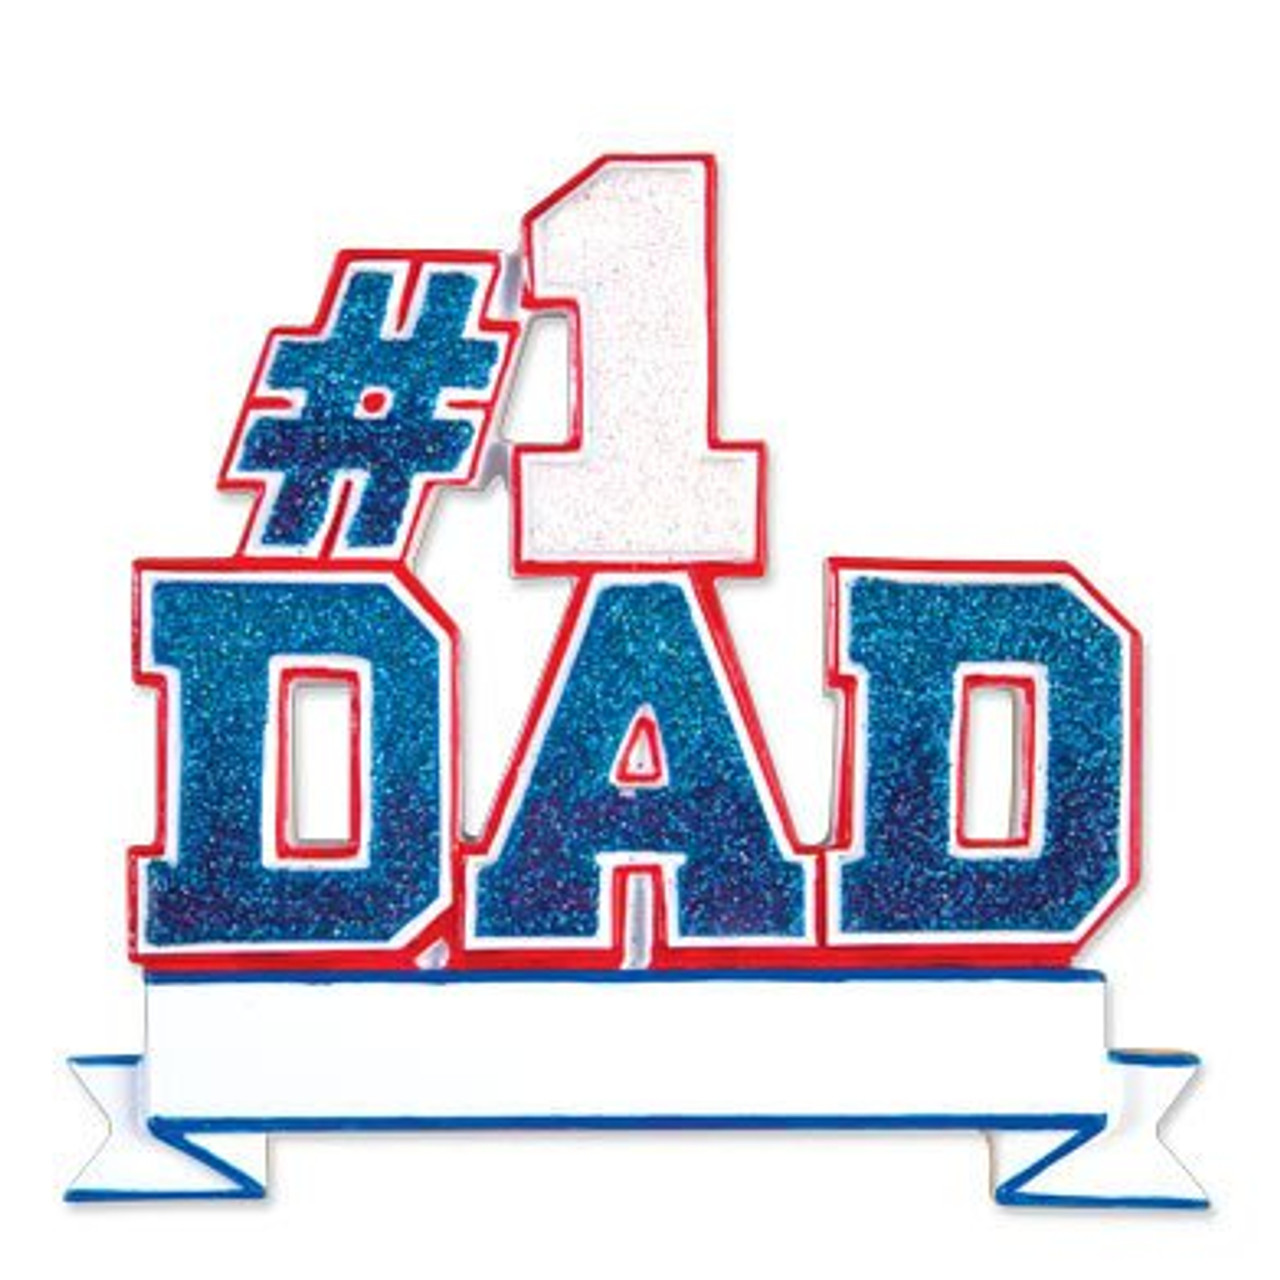 #1 Dad Personalized Ornament